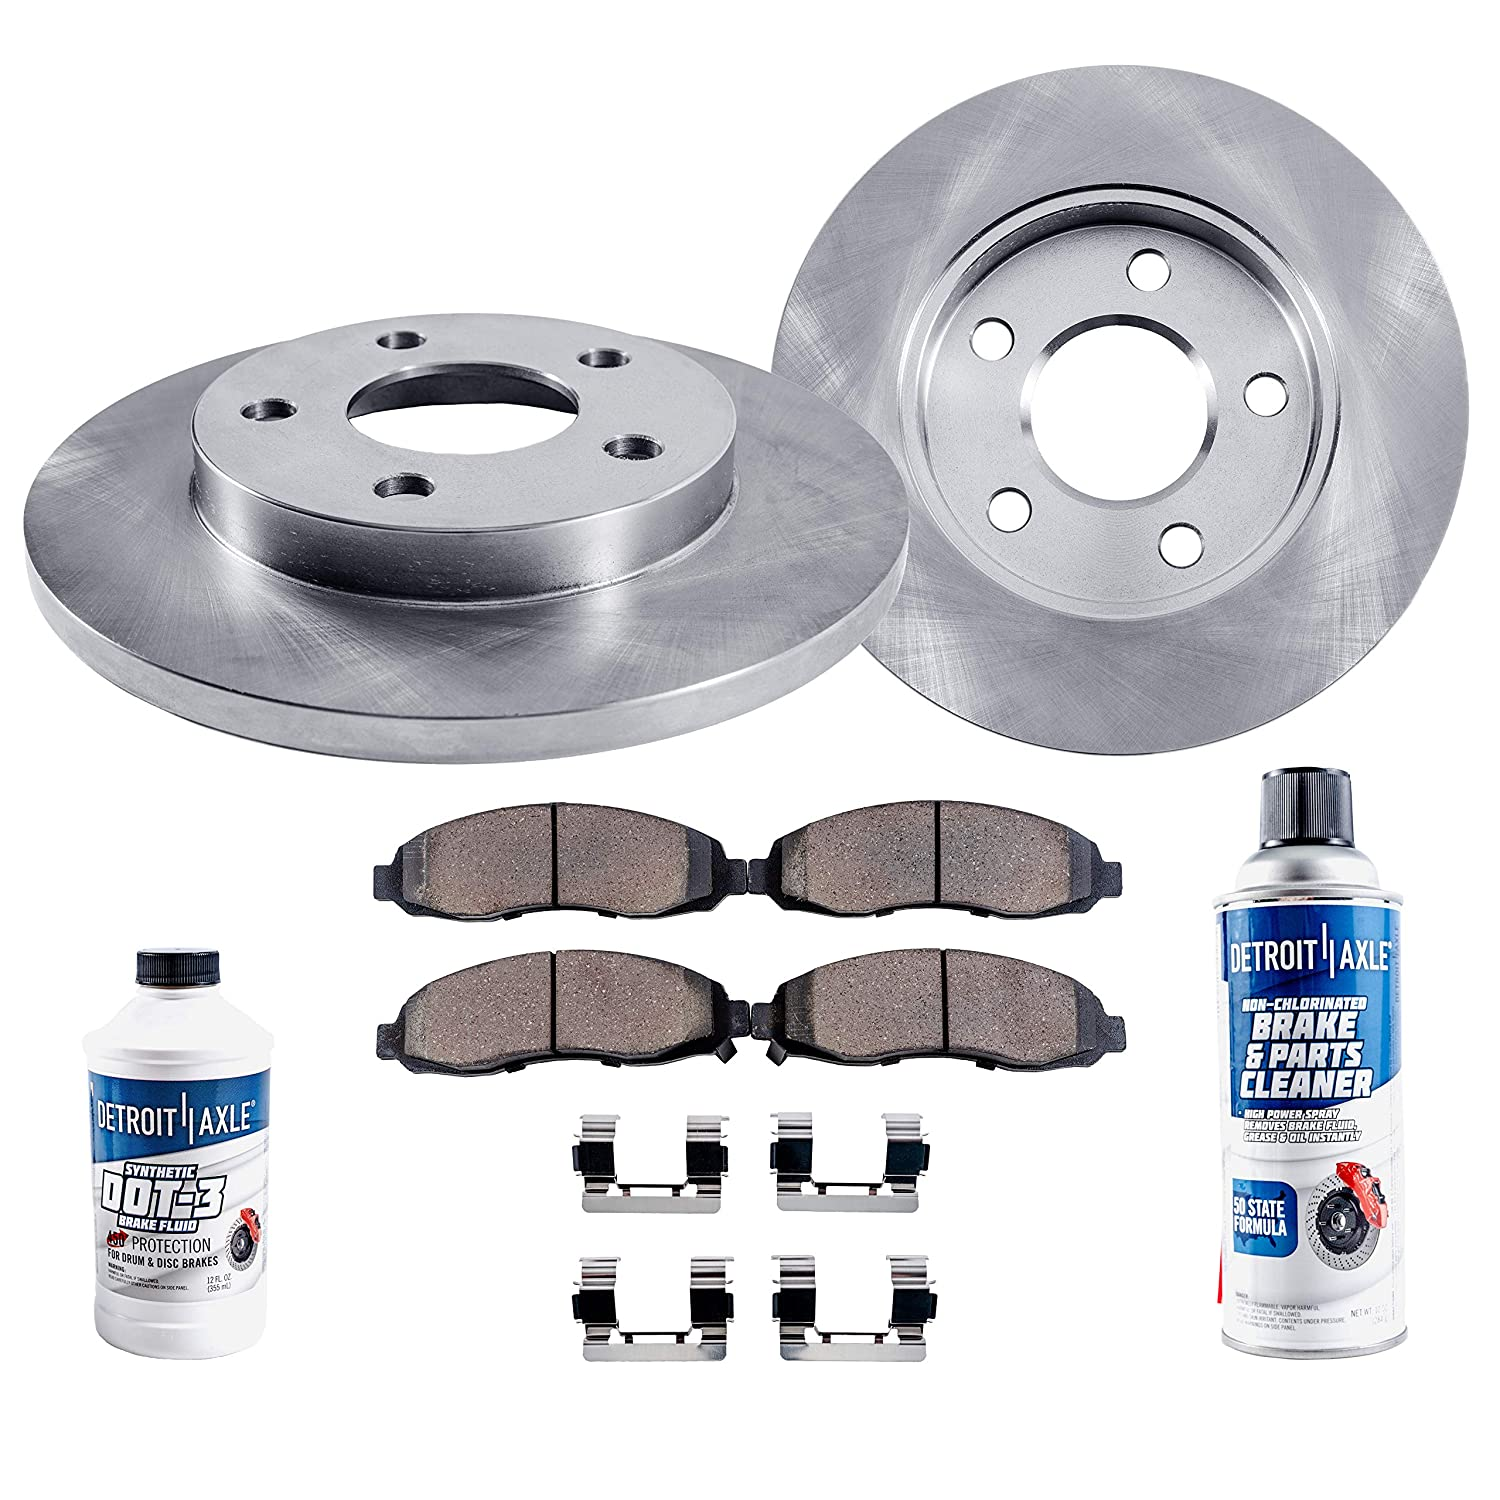 TA053581 Max Brakes Front Elite Brake Kit Fits: 2008 08 2009 09 2010 10 Dodge Grand Caravan E-Coated Slotted Drilled Rotors + Metallic Pads